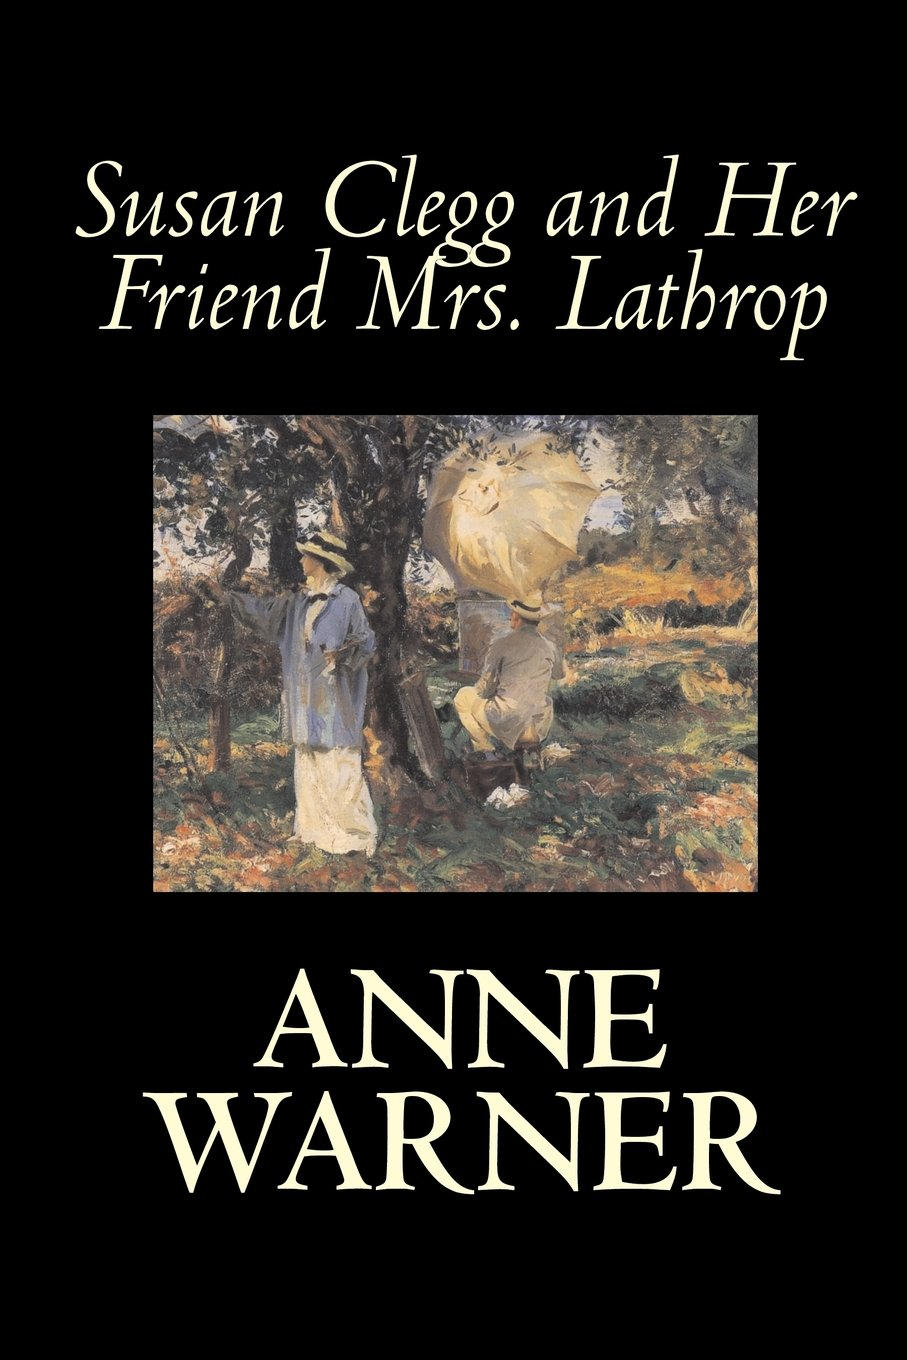 Susan Clegg and Her Friend Mrs. Lathrop by Anne Warner, Fiction, Literary pdf epub